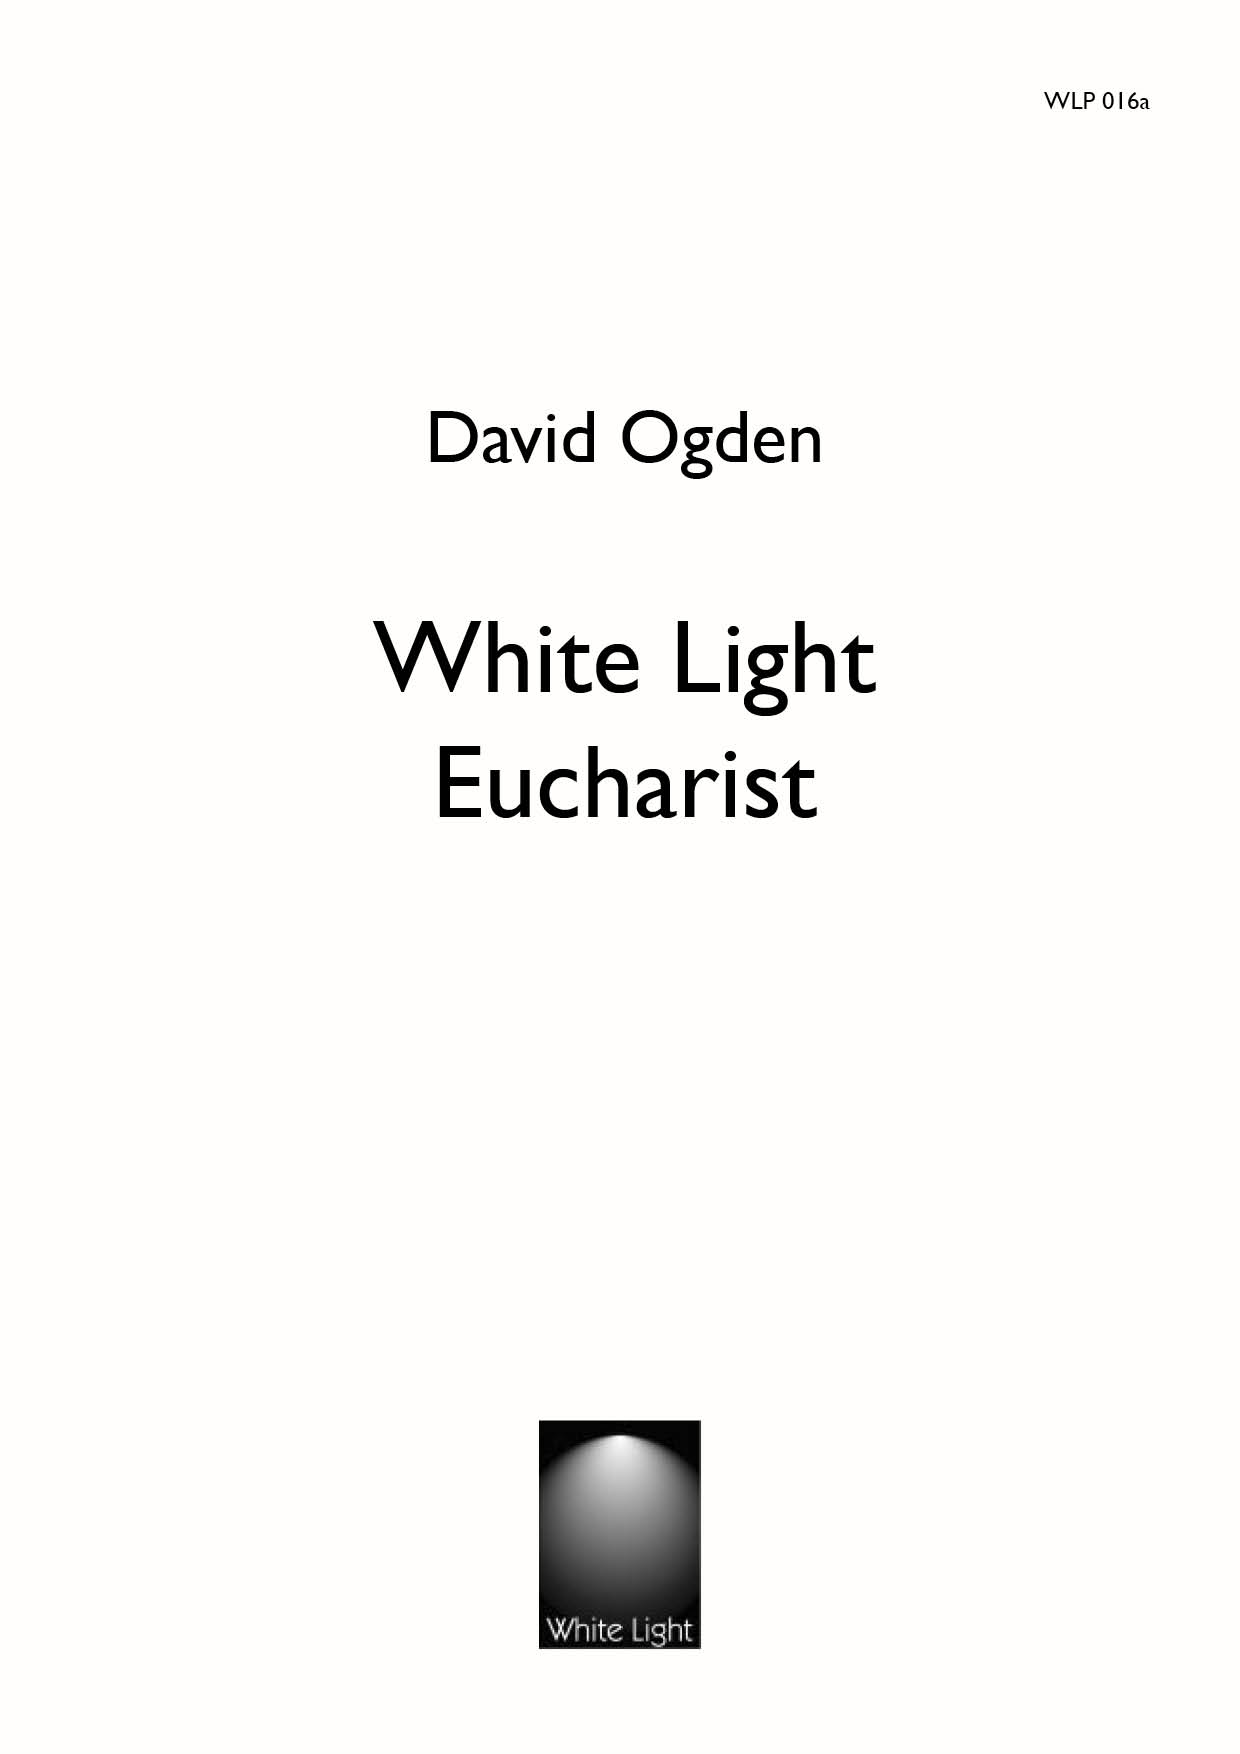 White Light Eucharist